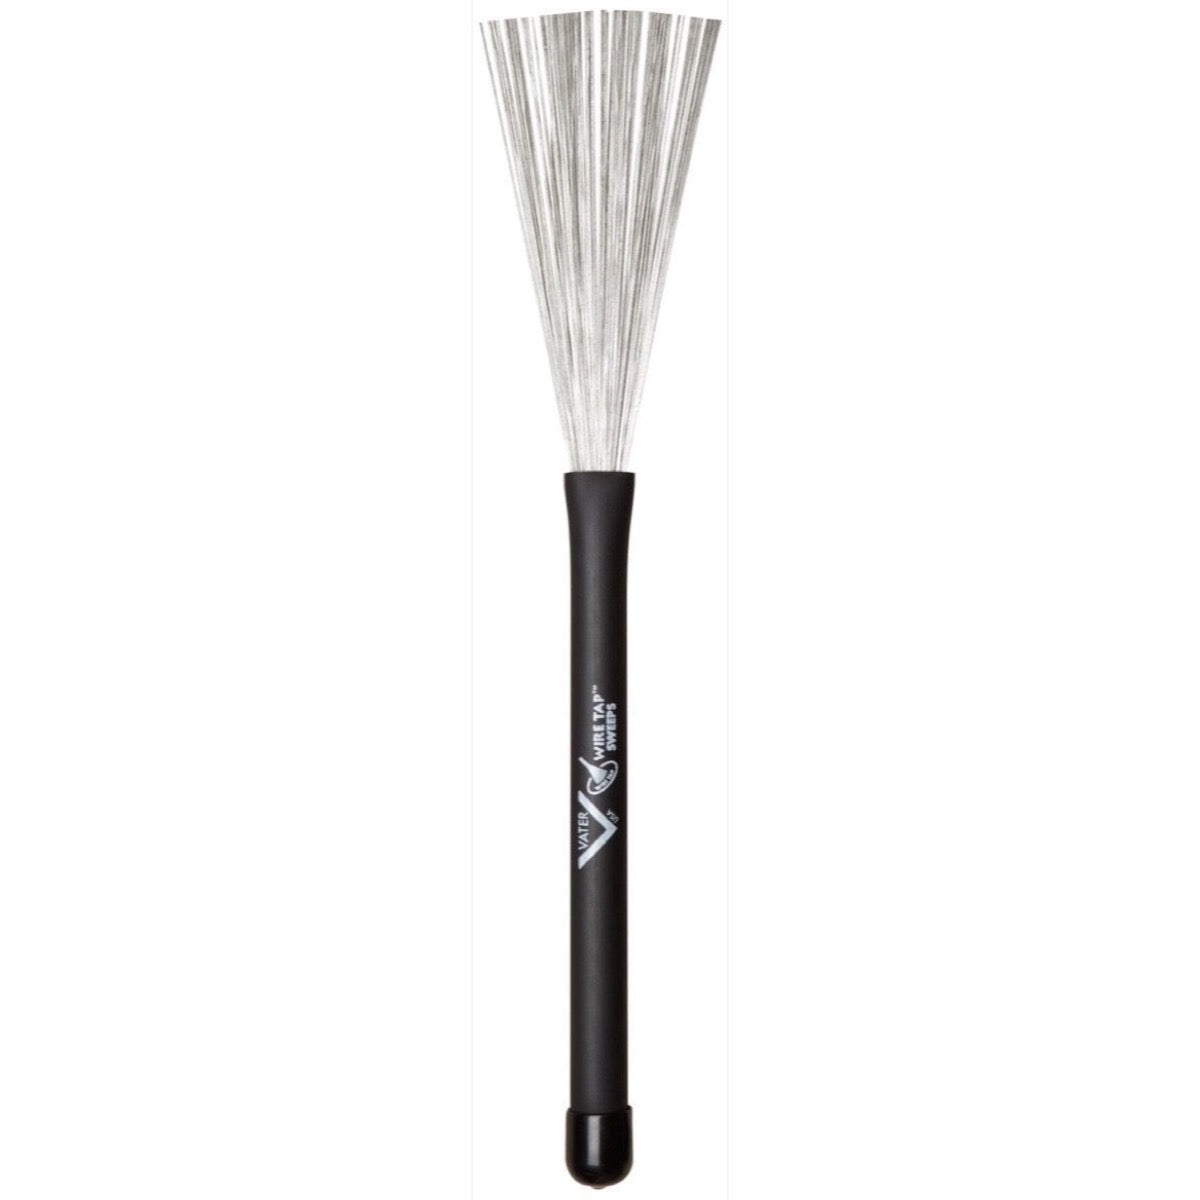 Vater Sweep Retractable Wire Brush